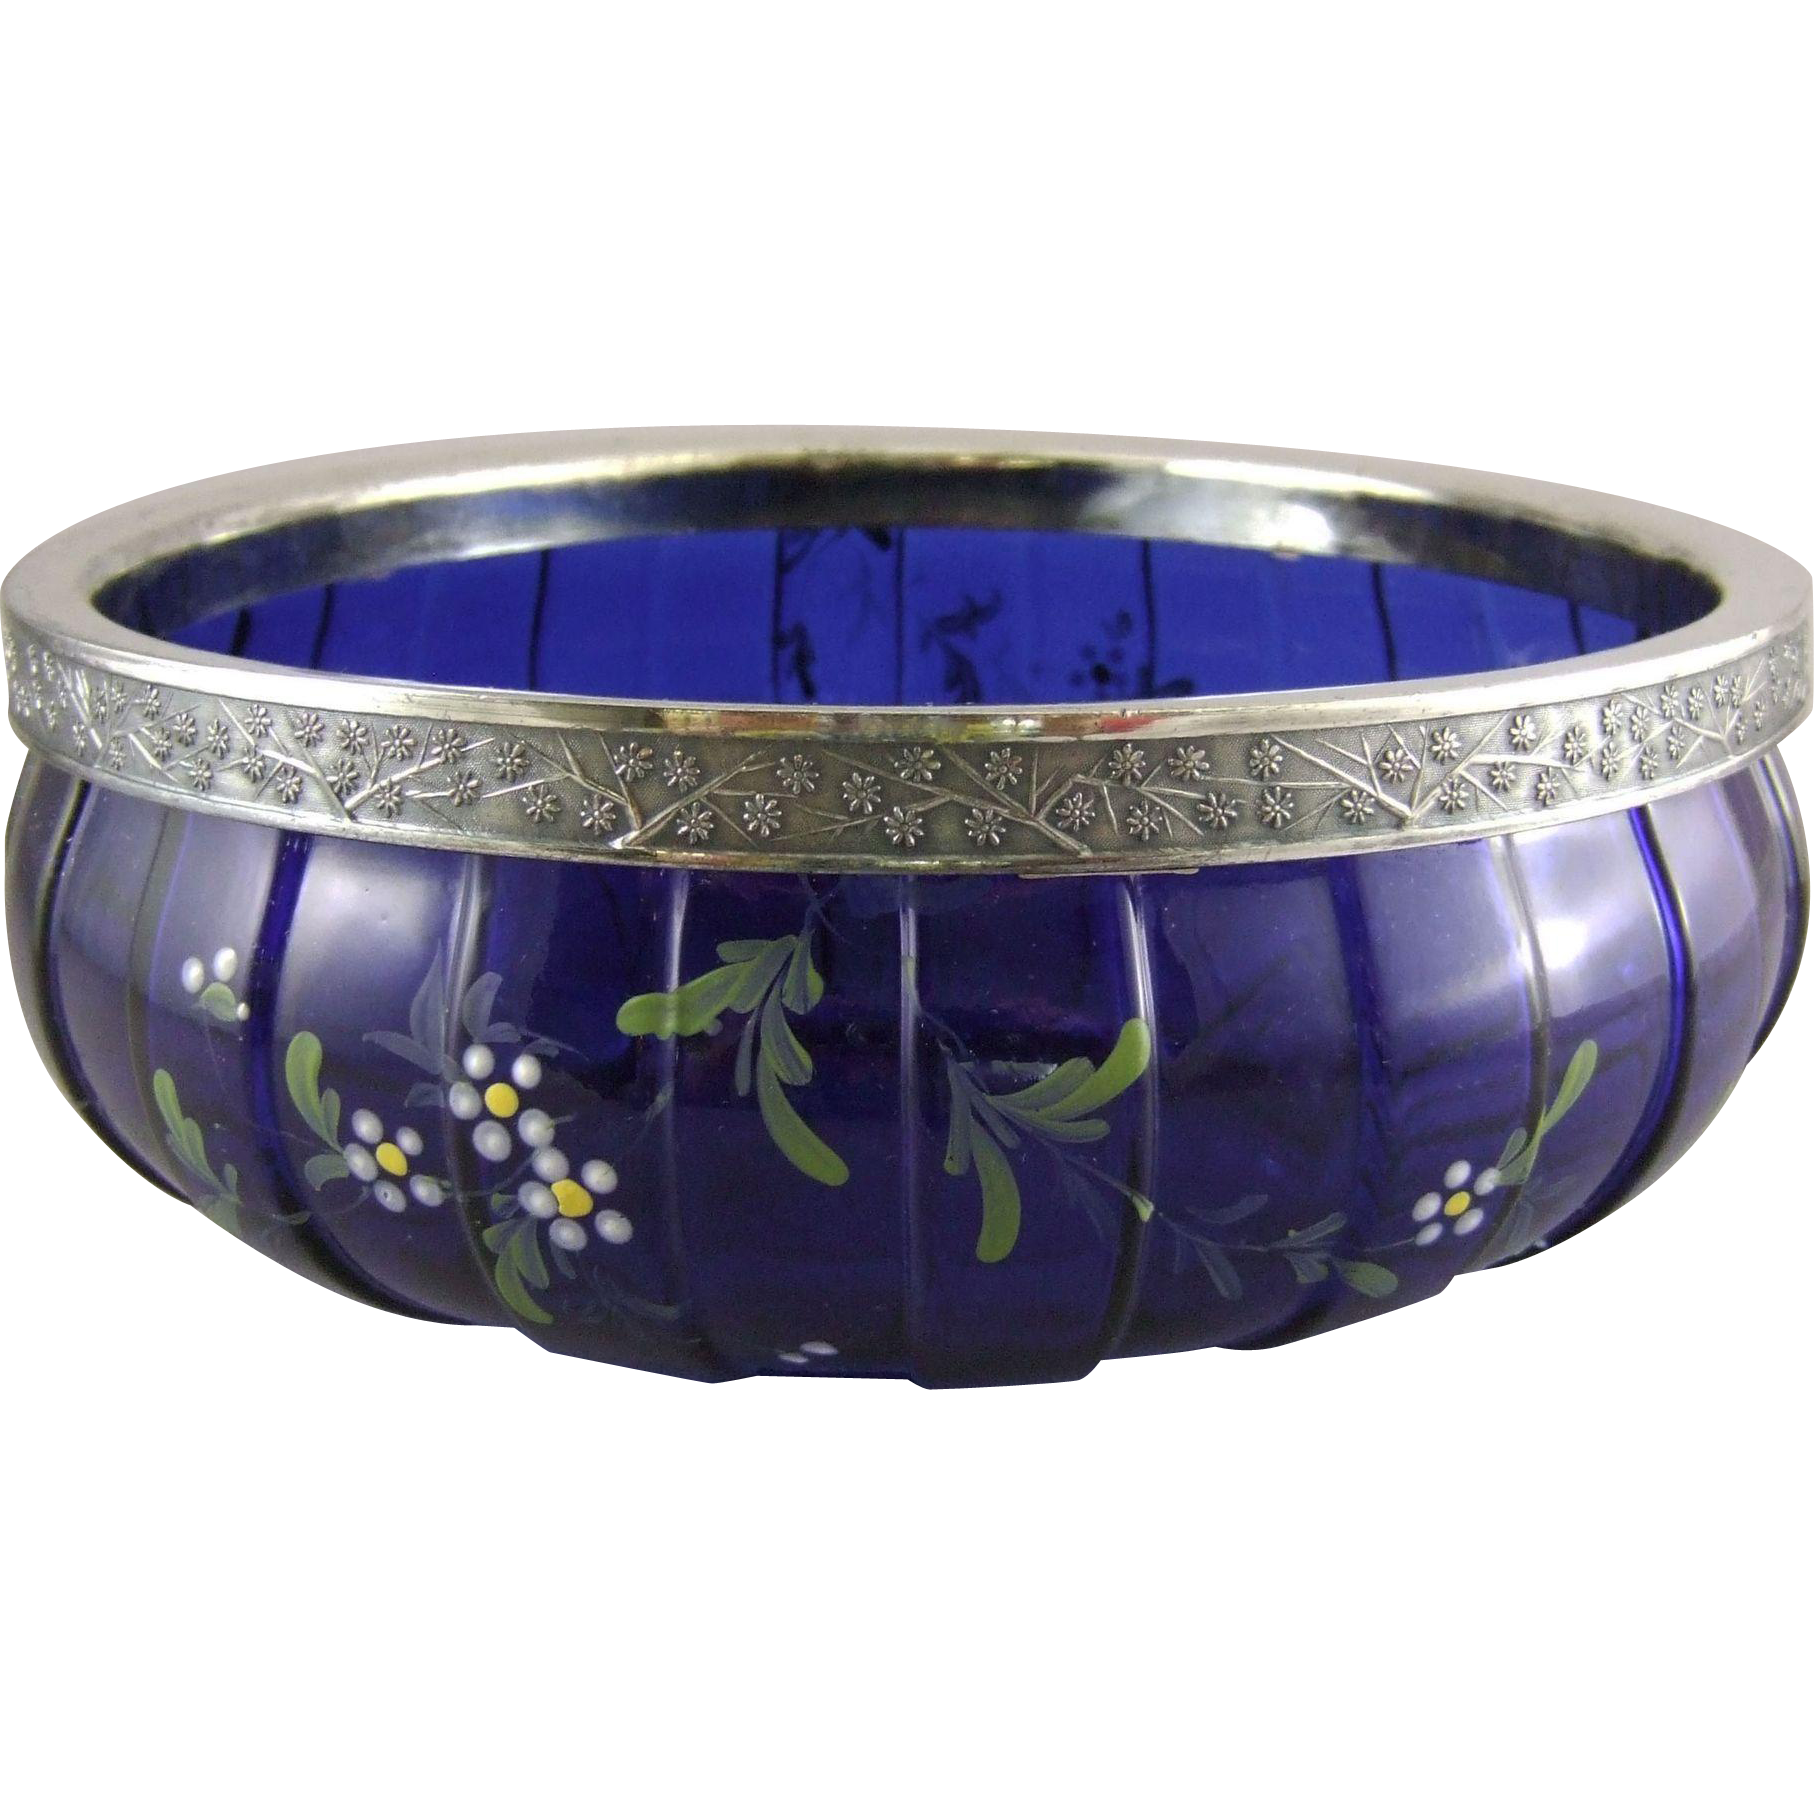 Consolidated Lamp & Glass Company Torquay Decorated Cobalt Blue Center Bowl